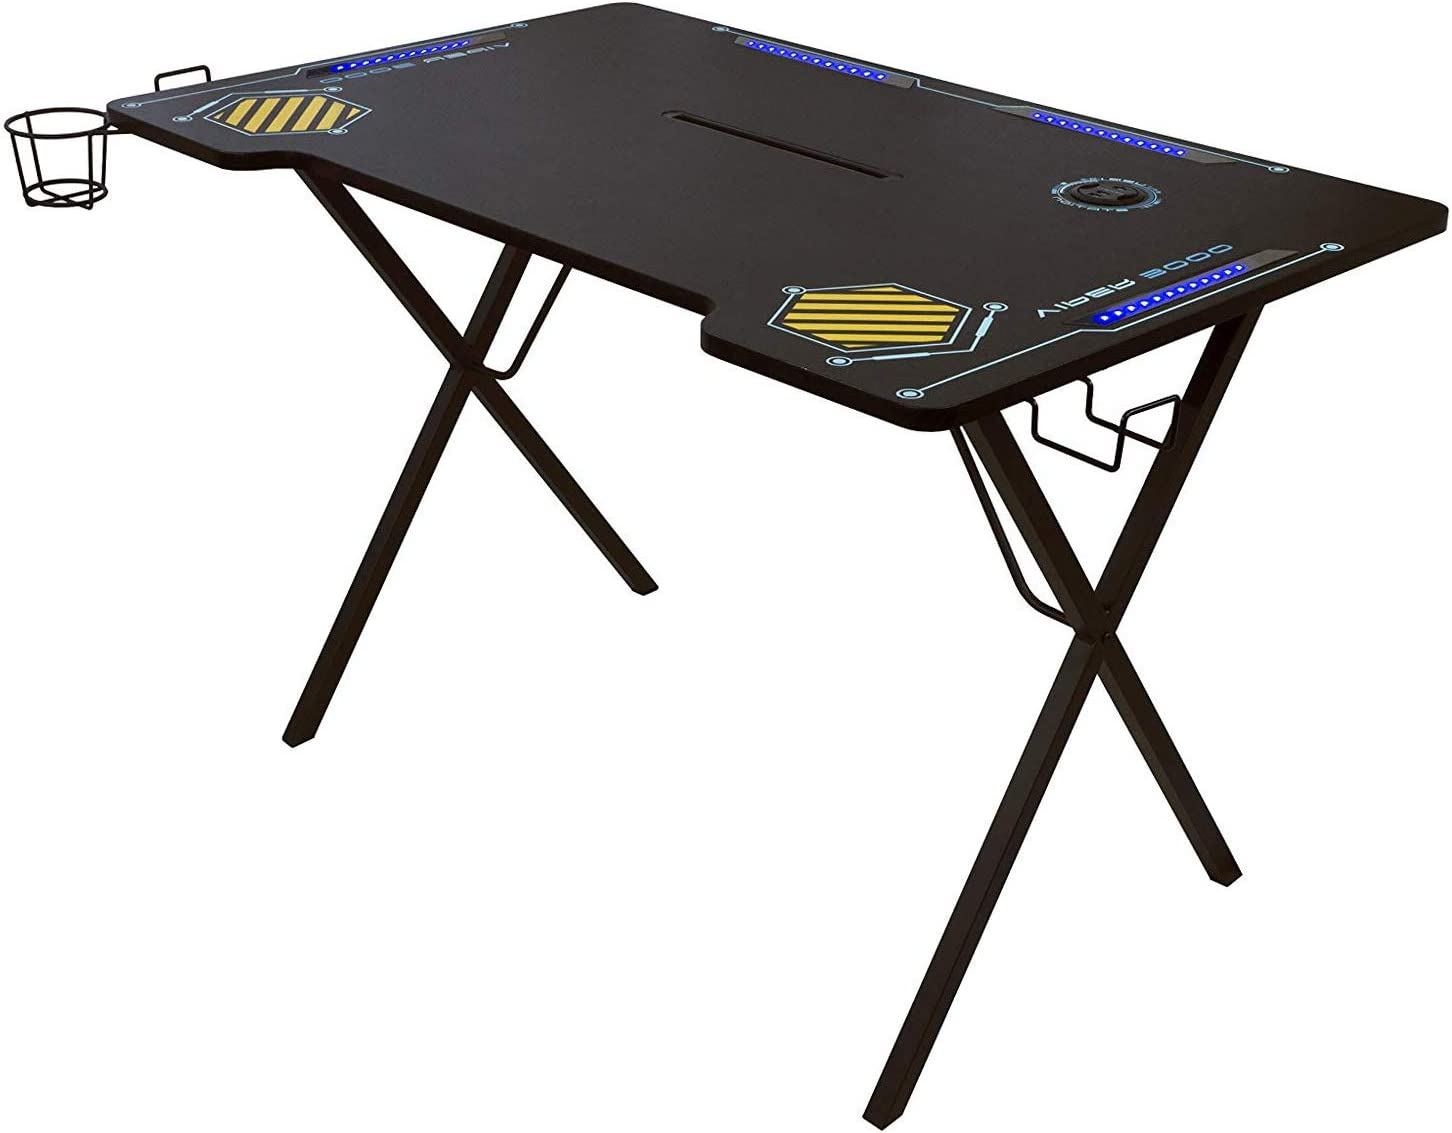 Atlantic Gaming Desk Viper 3000 - Computer Gaming Desk, LED Illumination, Three USB 3.0 Ports, Tablet/Phone Slot, Cup Holder, Dual Headphone Hooks, Storage Tray, Satin Finish Surface, PN33906164